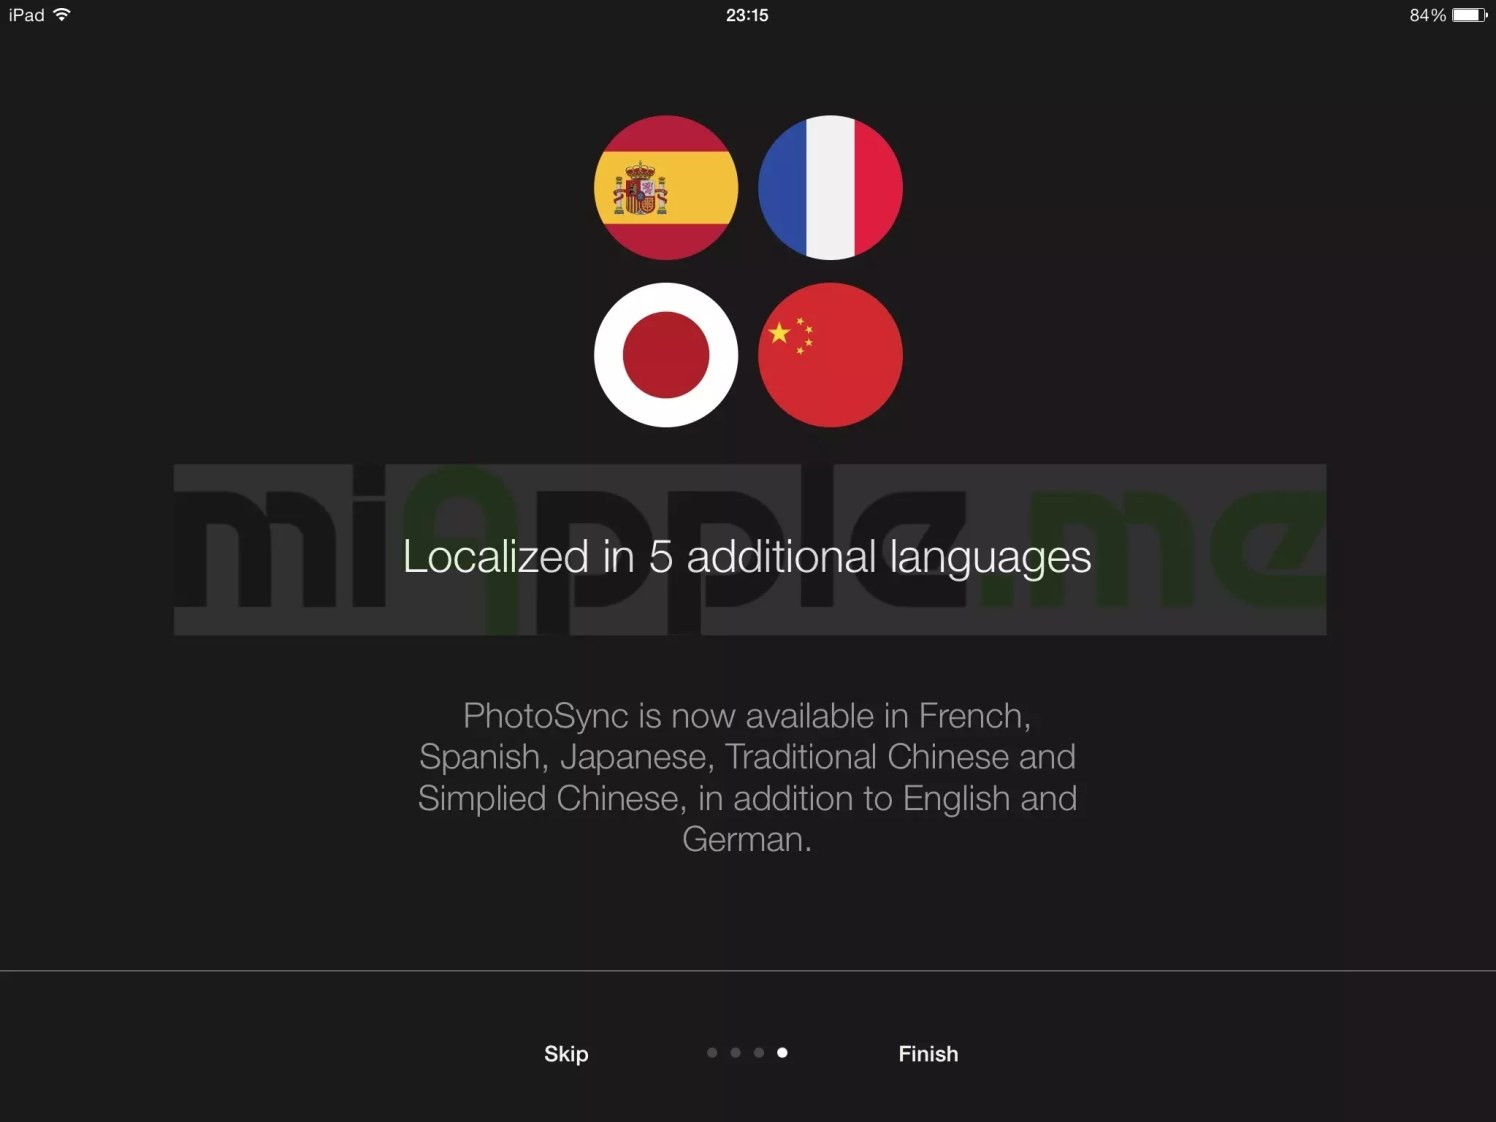 PhotoSync 2.1 features: 5 additional languages